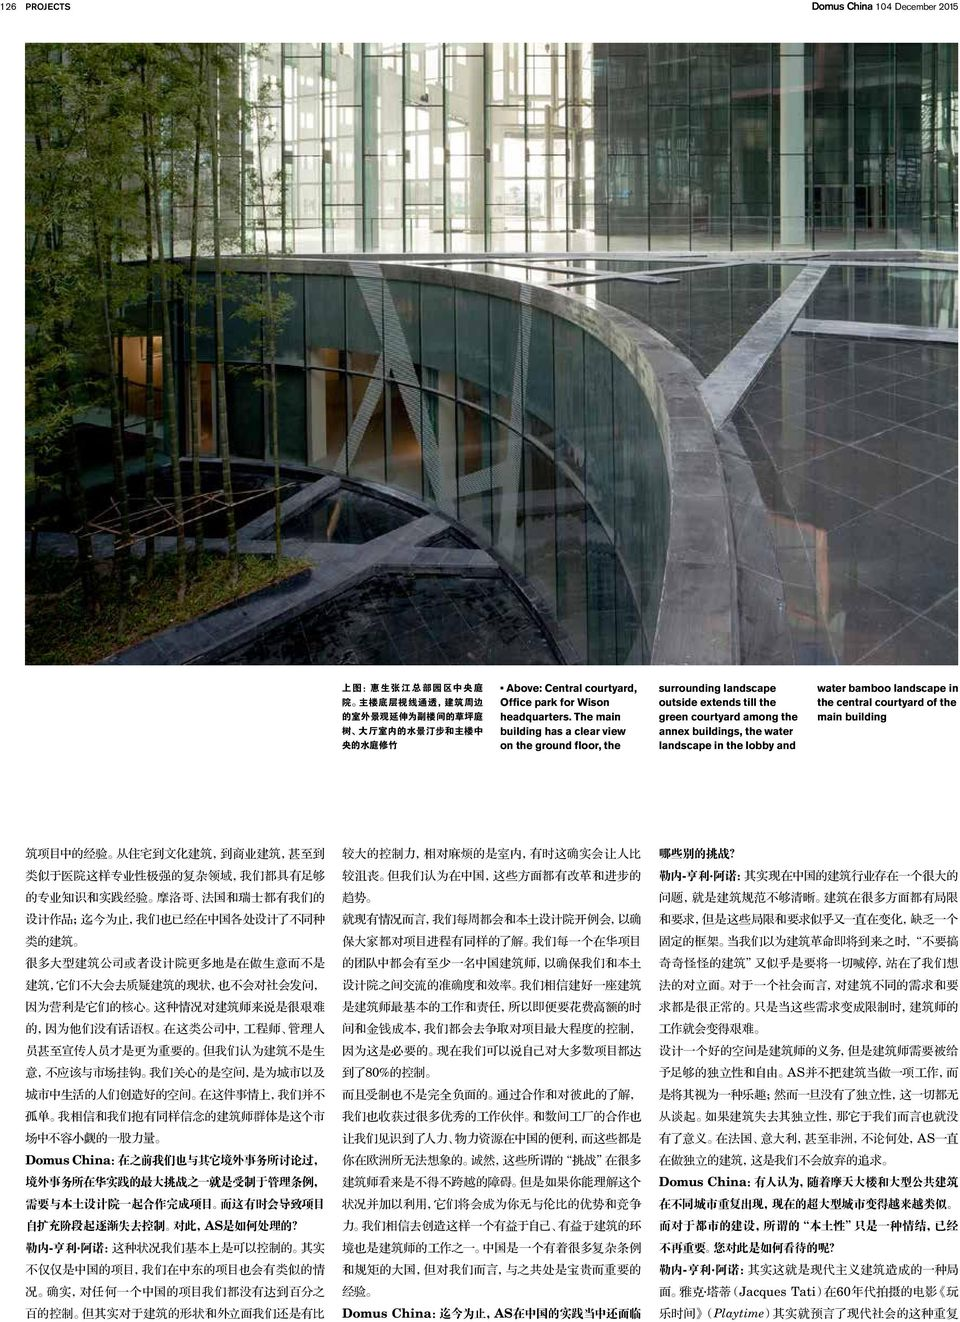 The main building has a clear view on the ground floor, the surrounding landscape outside extends till the green courtyard among the annex buildings, the water landscape in the lobby and water bamboo